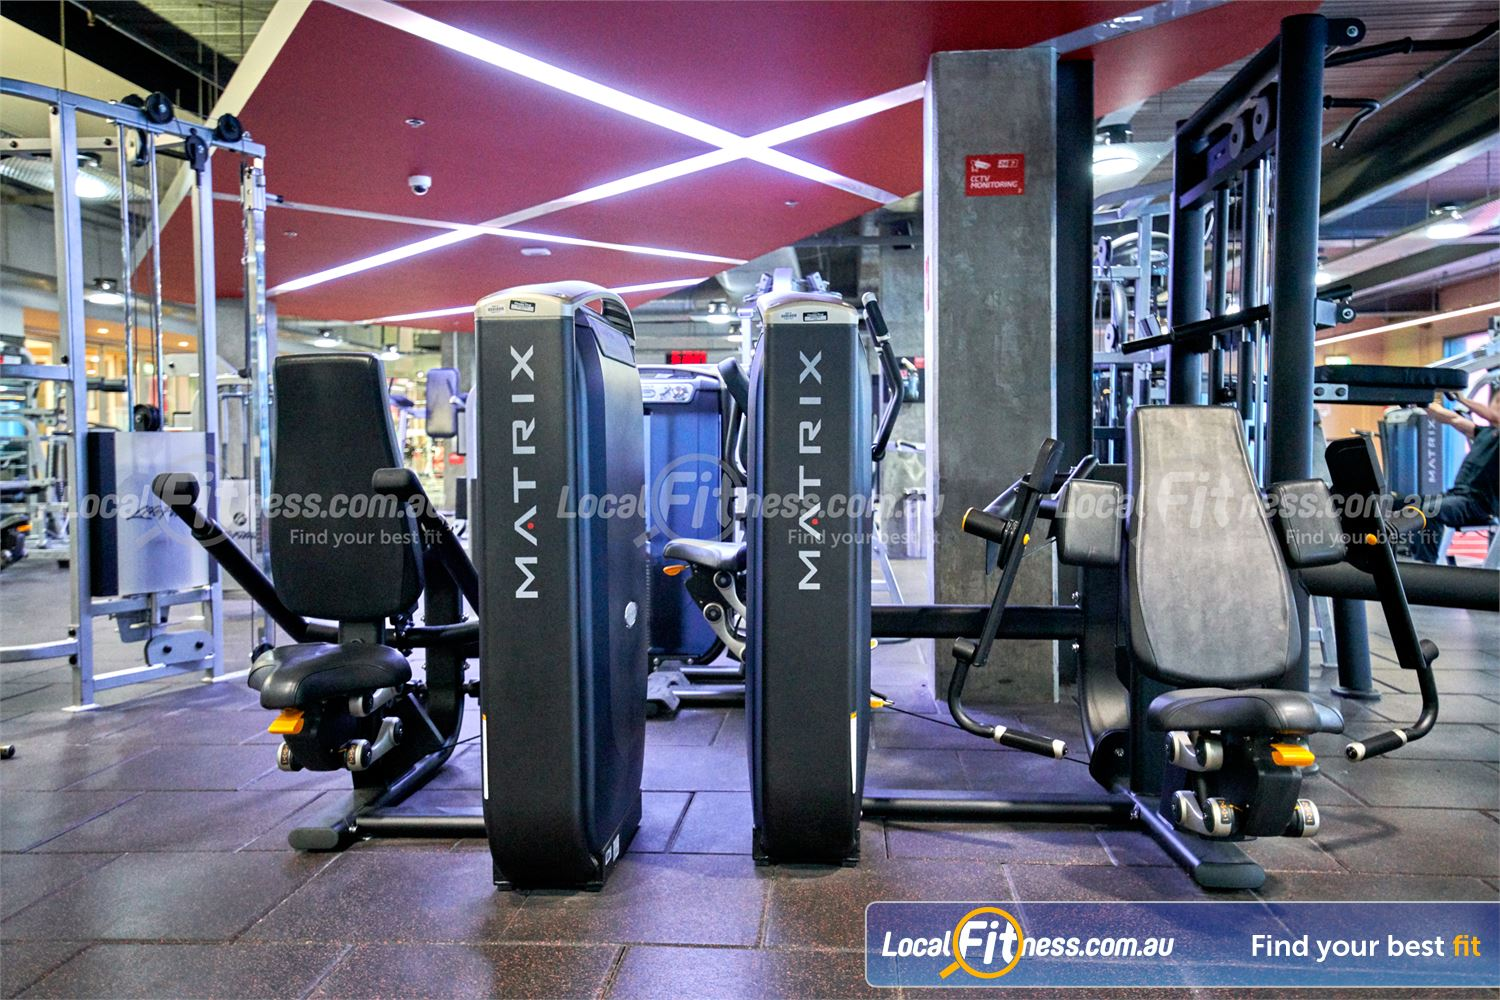 Fitness First Victoria Gardens Near Toorak Our Richmond gym includes state of the art equipment from MATRIX.